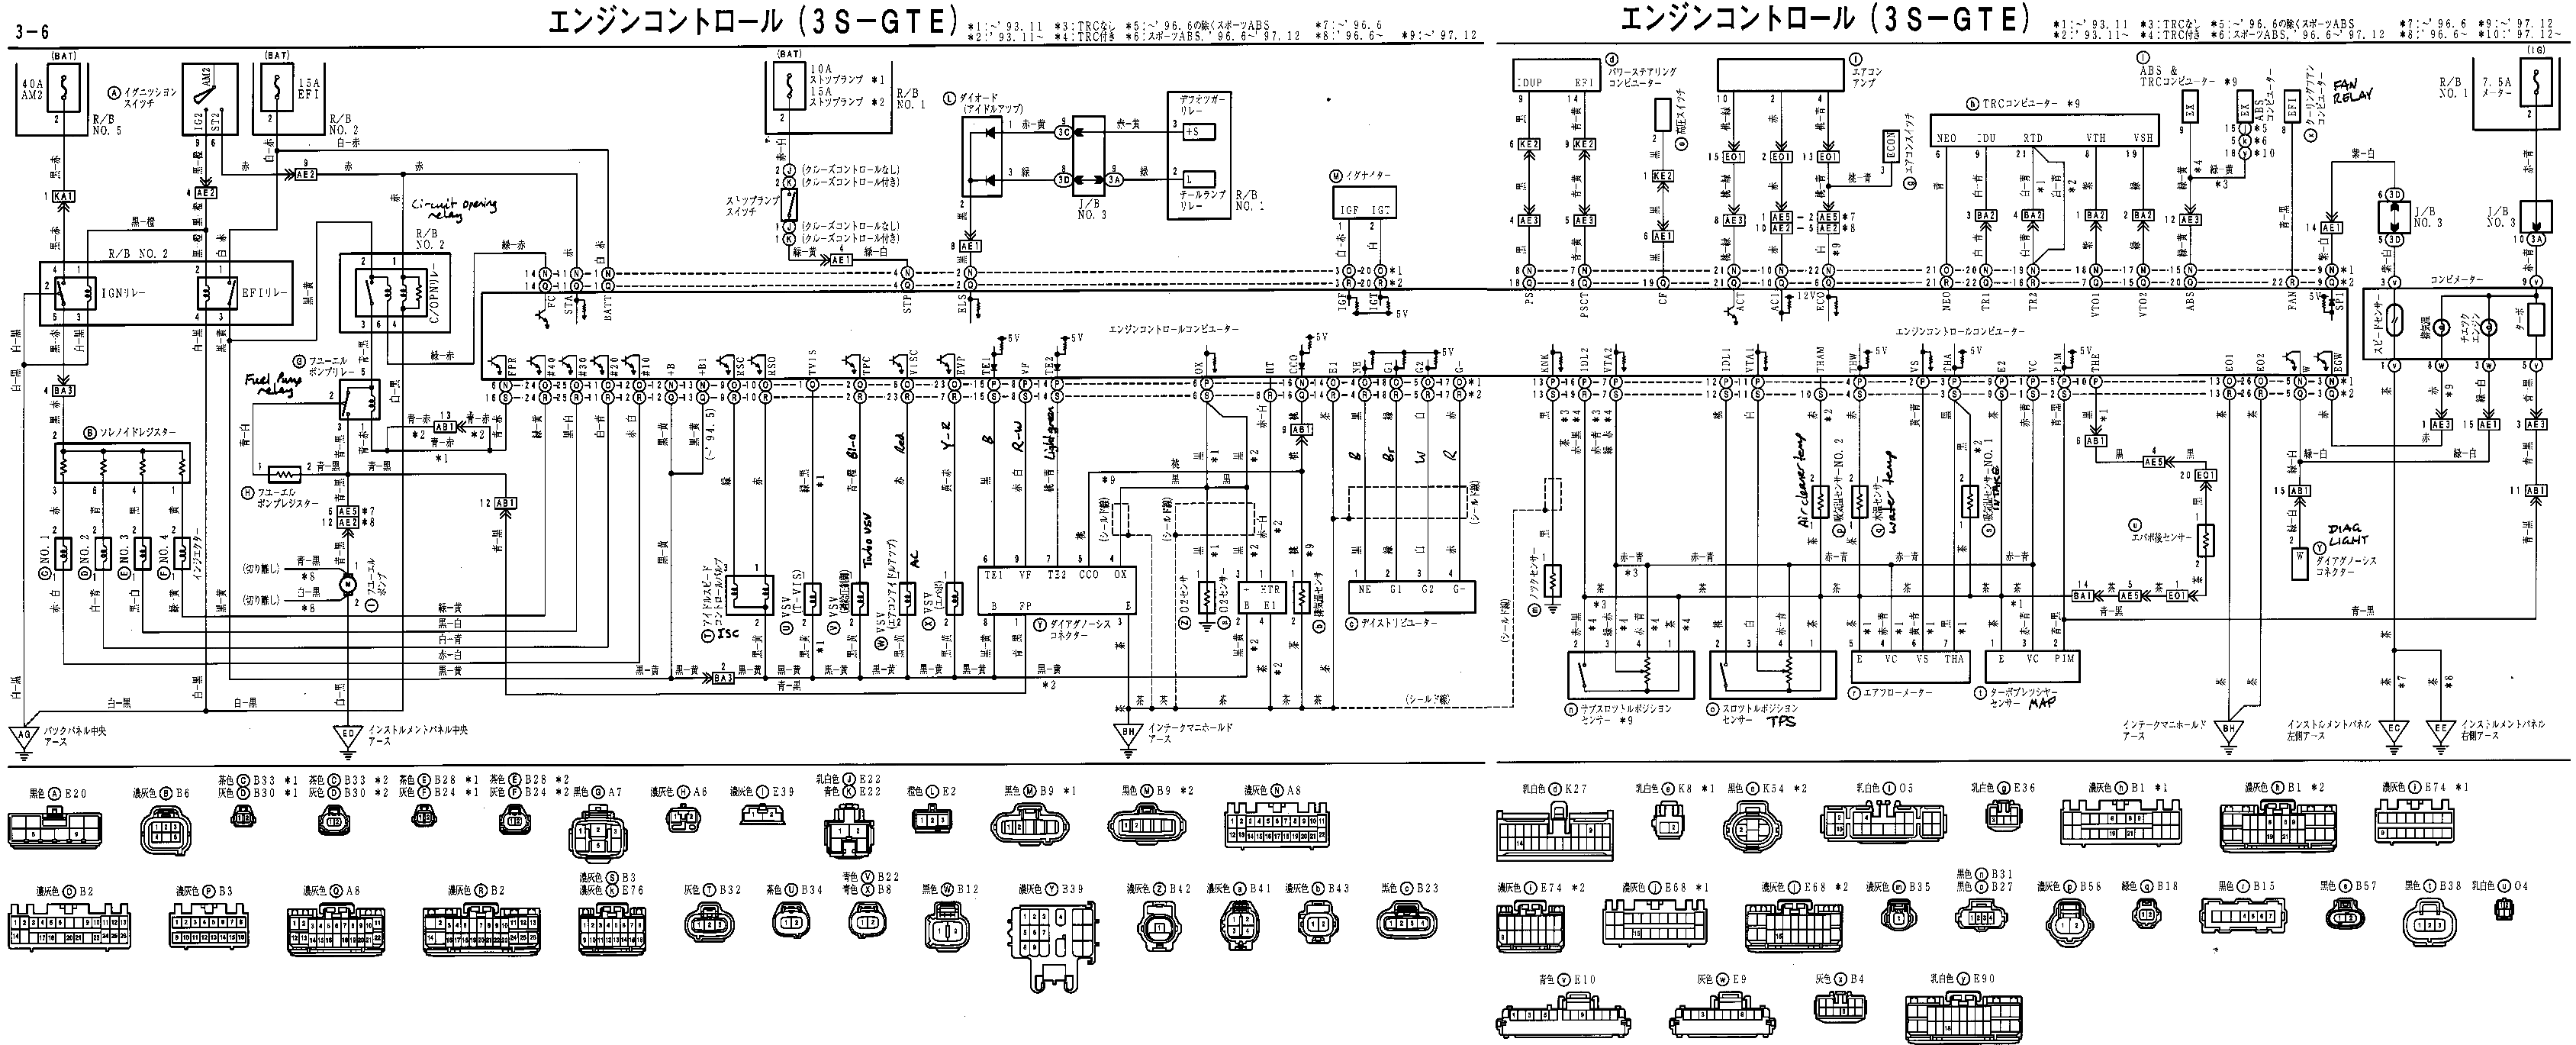 Unknown 3SGTE Diagram mwp's toyota celica gt4 (st165, st185, st205) documents & media 2002 Toyota Celica GT MPG at gsmx.co